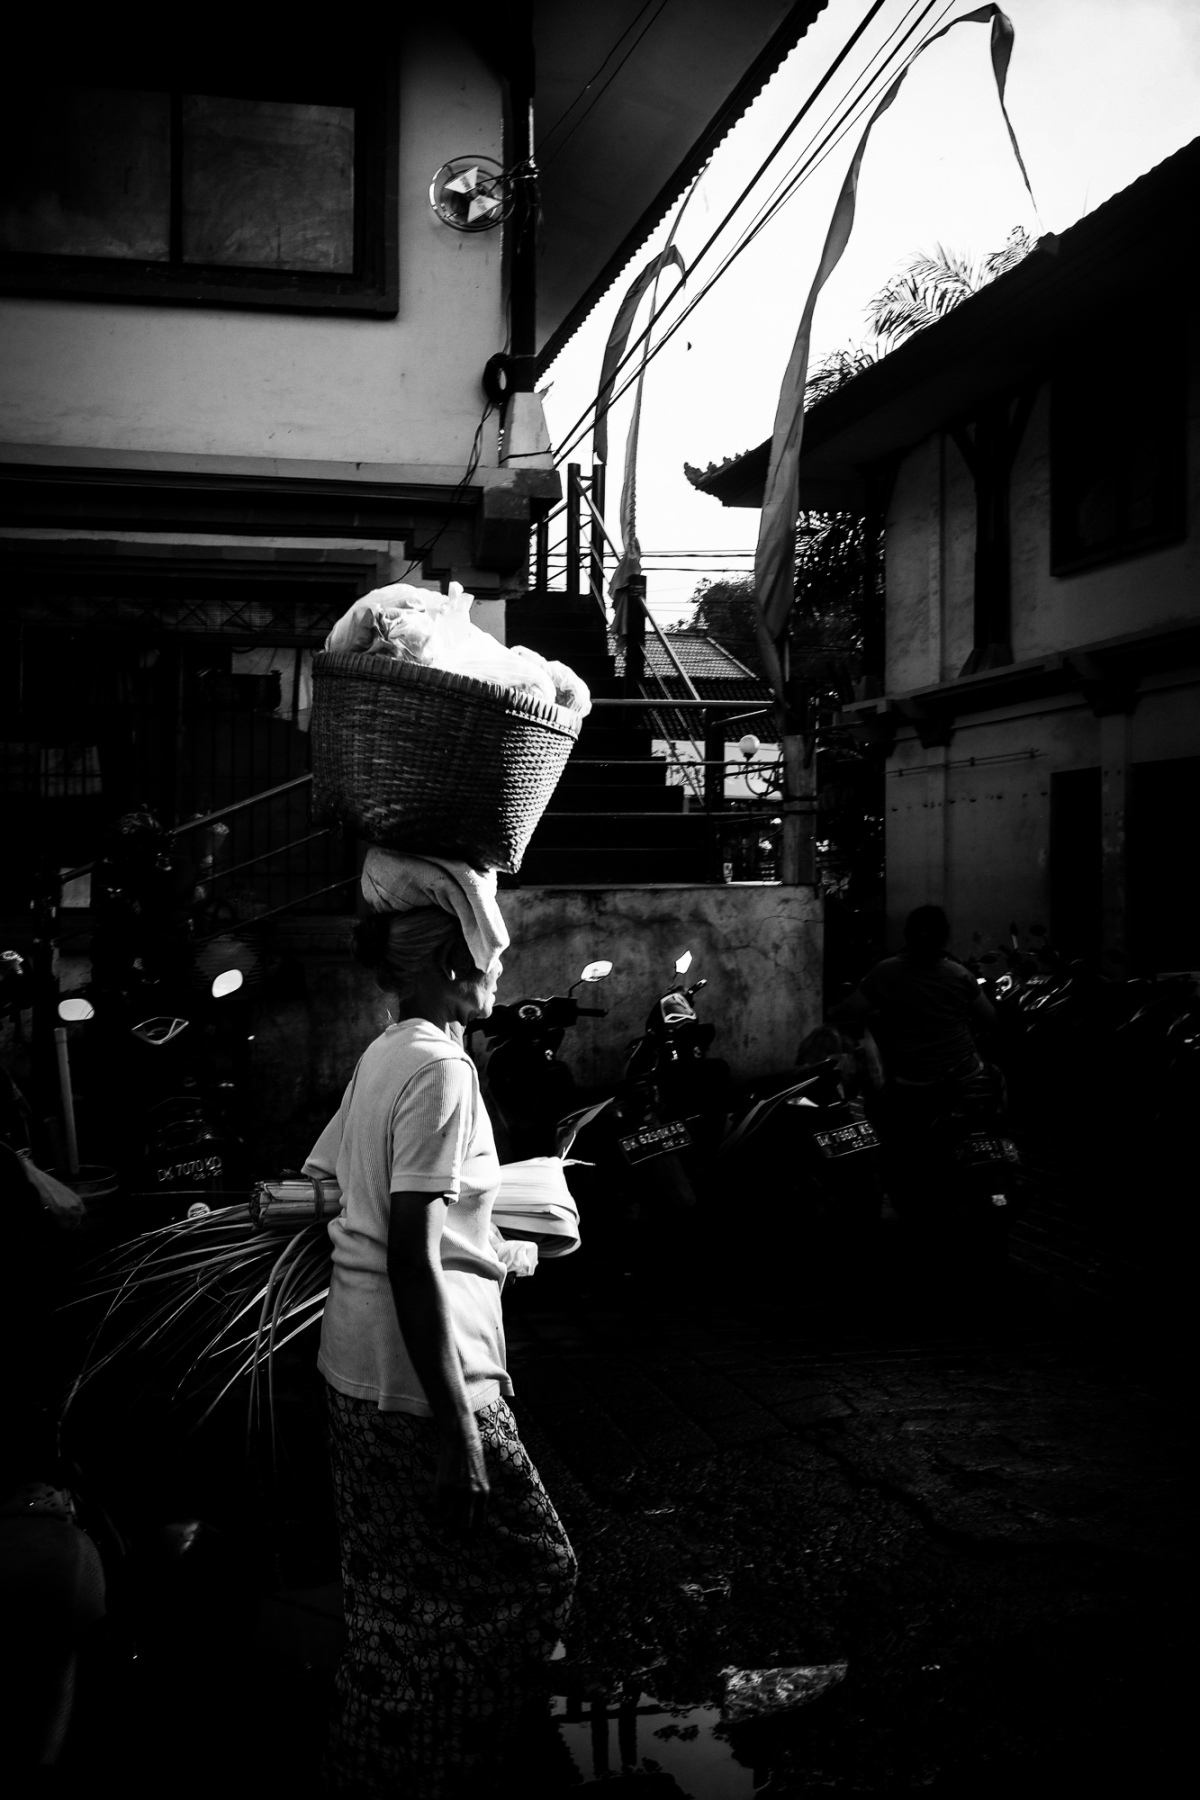 Chasing Harsh Light in Pasar Ubud by Bali Street Photographer